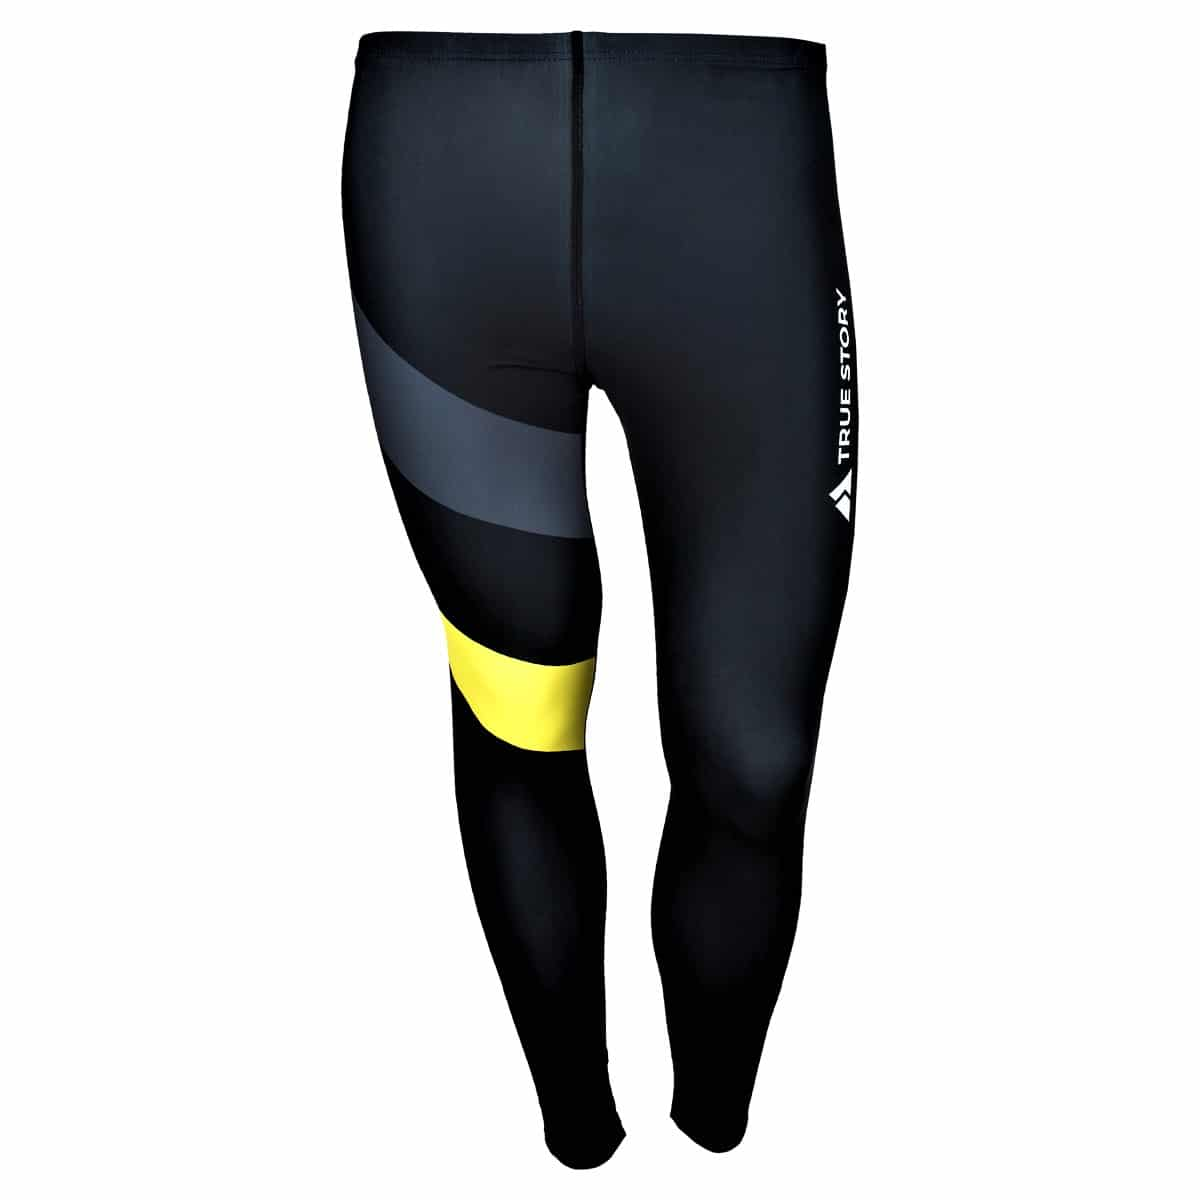 Elite orienteering tights